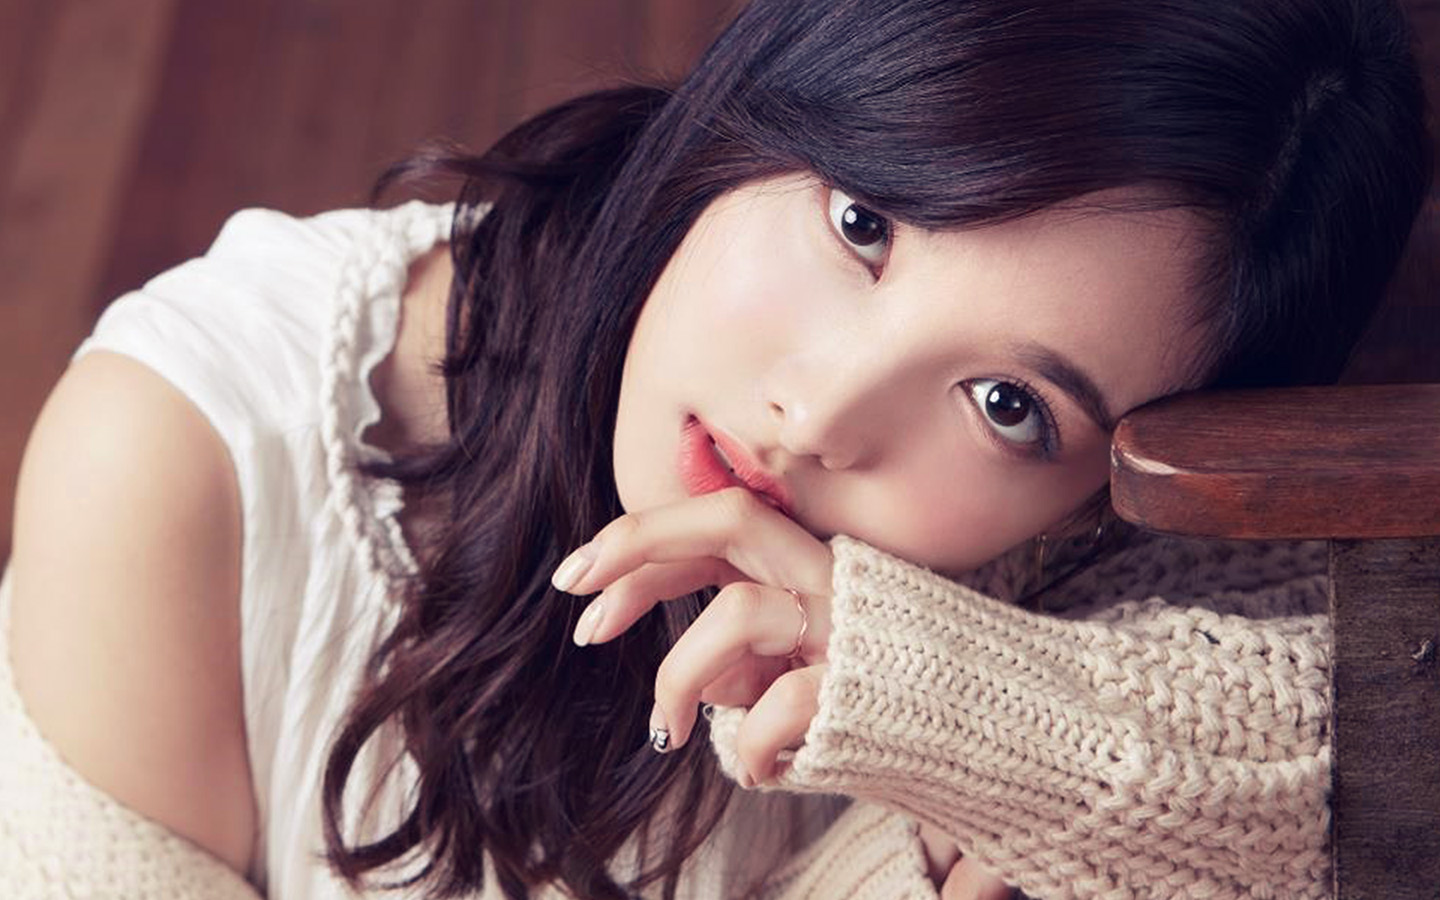 Hp22 kpop asian girl wallpaper - Asian schoolgirl wallpaper ...